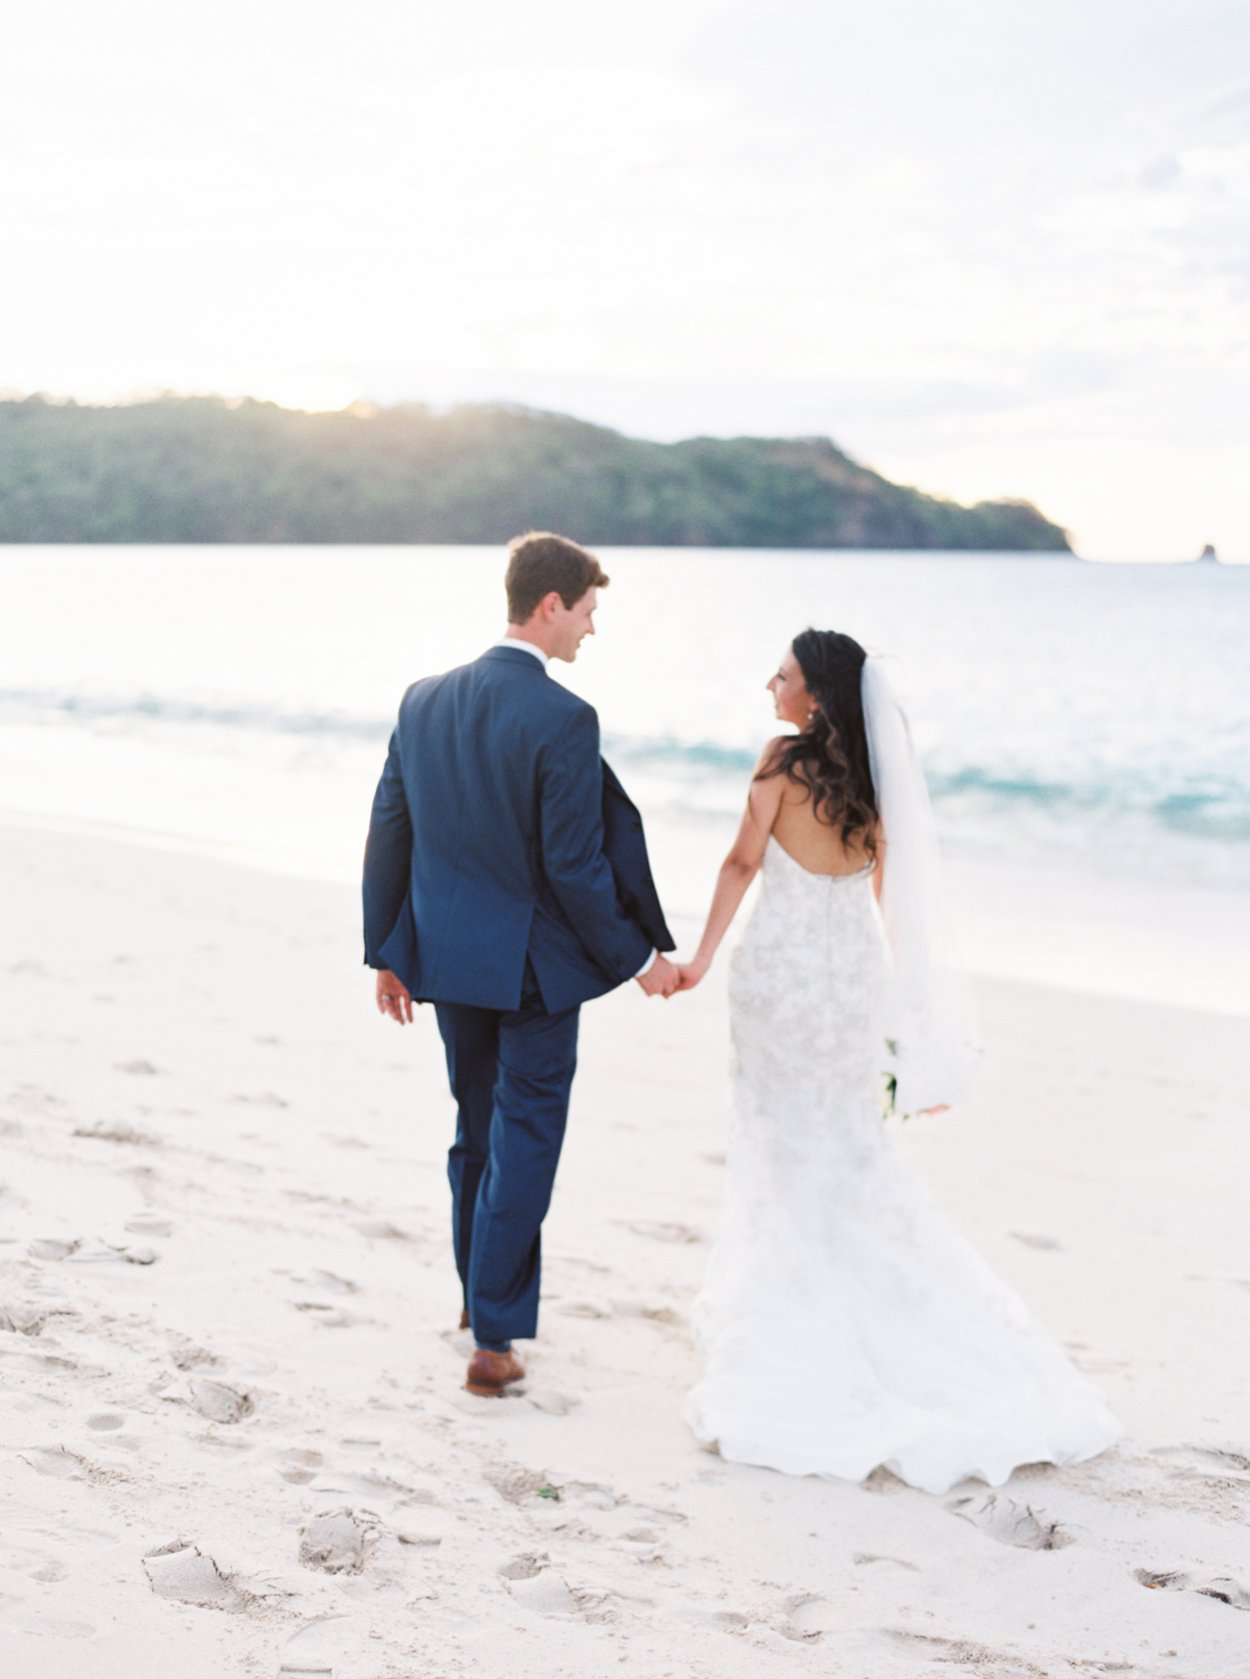 COSTA RICA TOP destination wedding location 2020